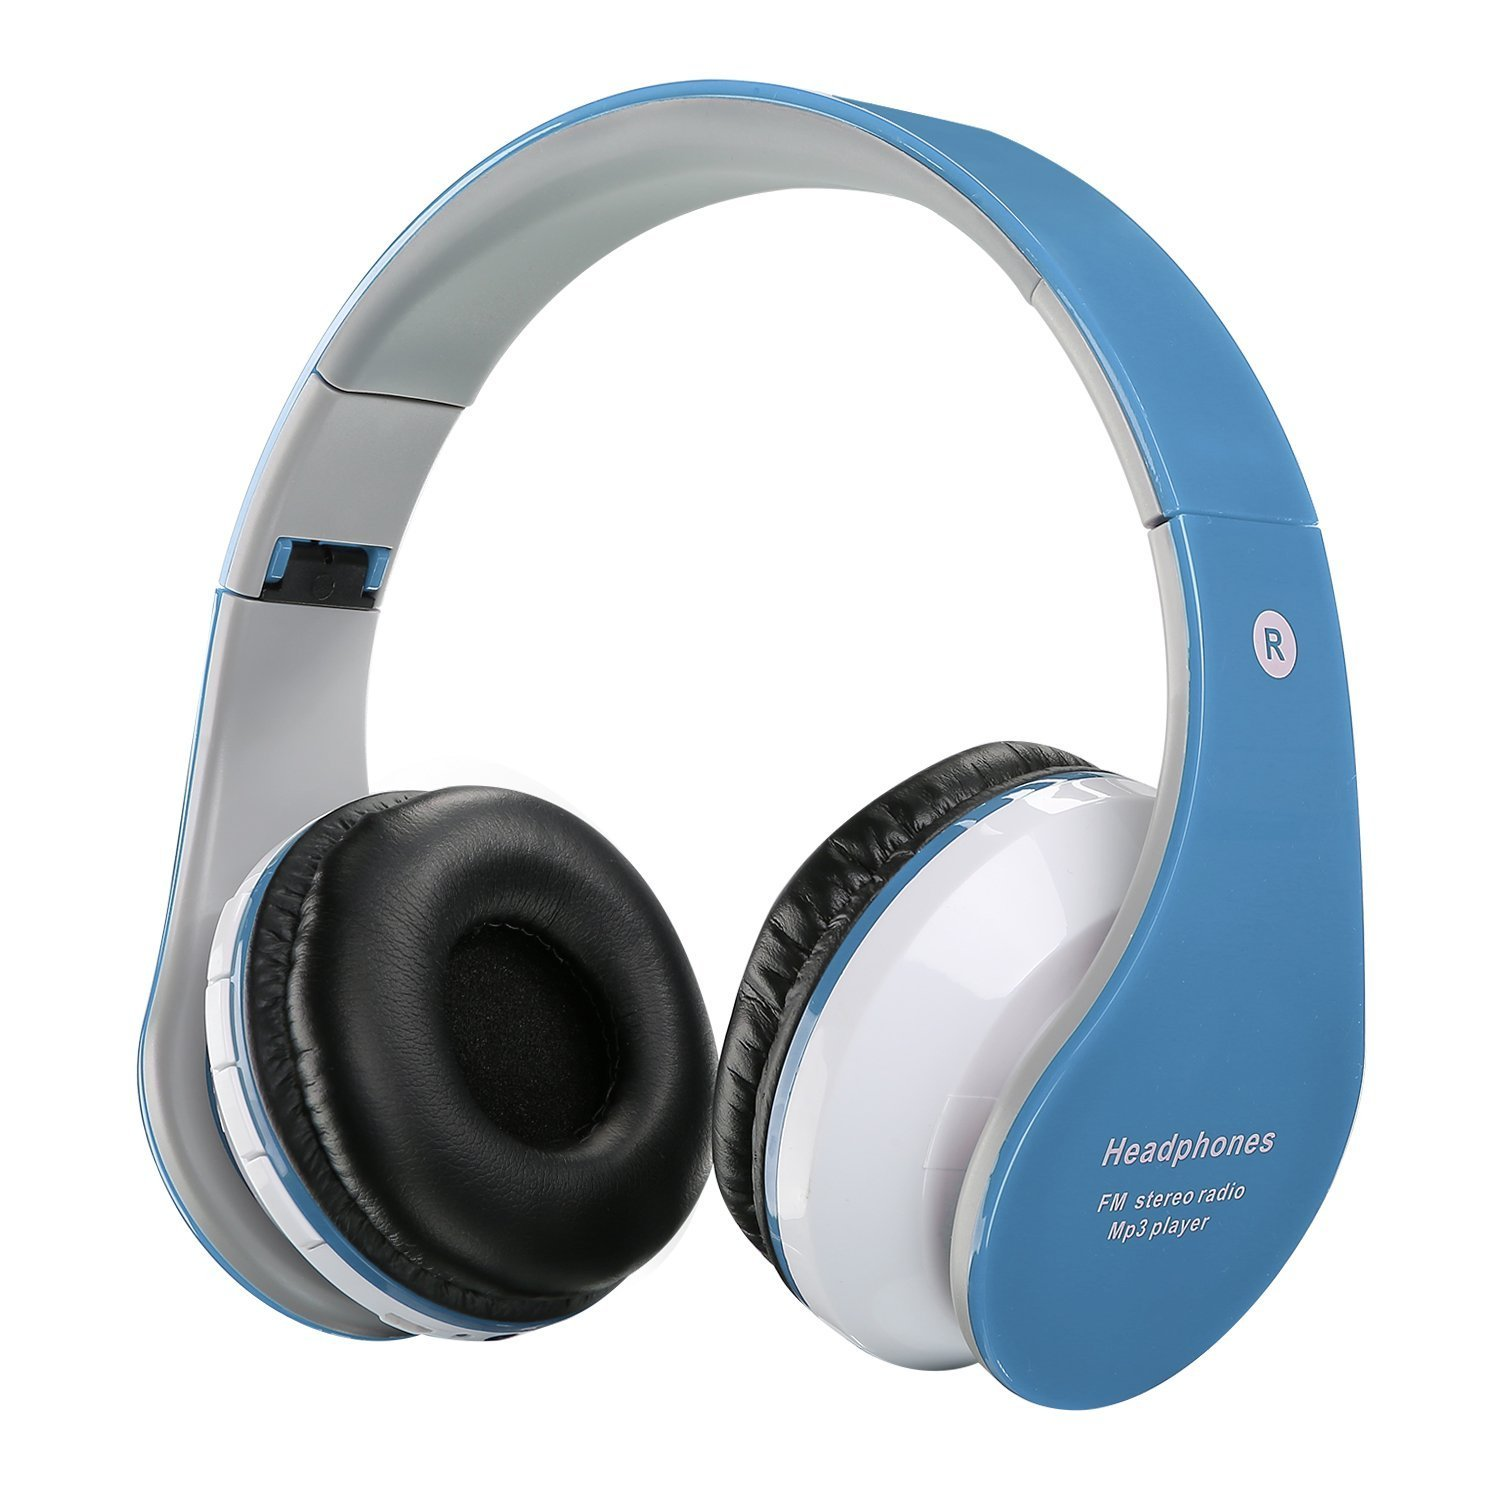 Kids Bluetooth Headphones, Wireless/Wired Foldable Adjustable Lightweight Headset with Mic, Noise Reduction Cancelling, for Phones Computer for Children/Boy / Girl/Teen / Family - Blue